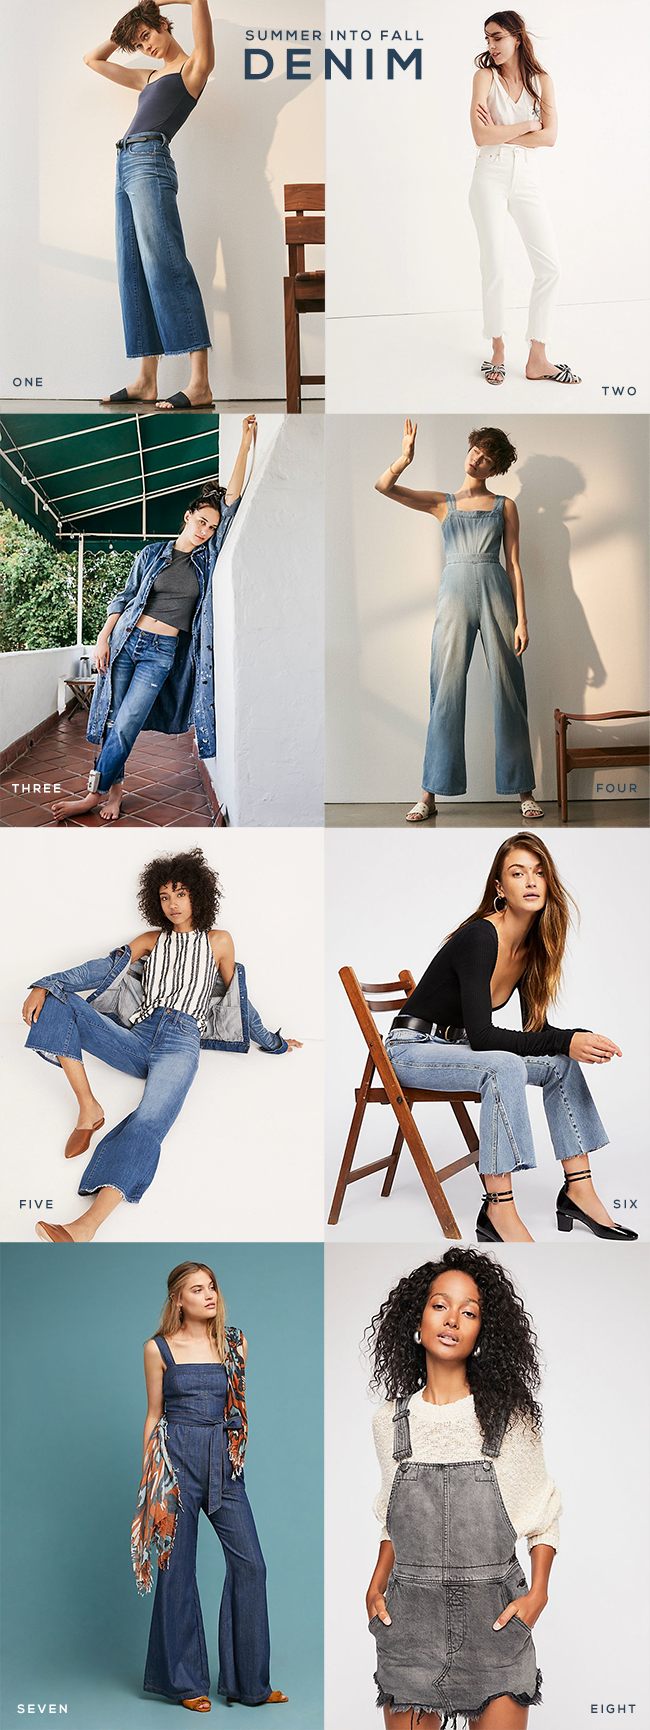 8 Summer Into Fall Denim Looks